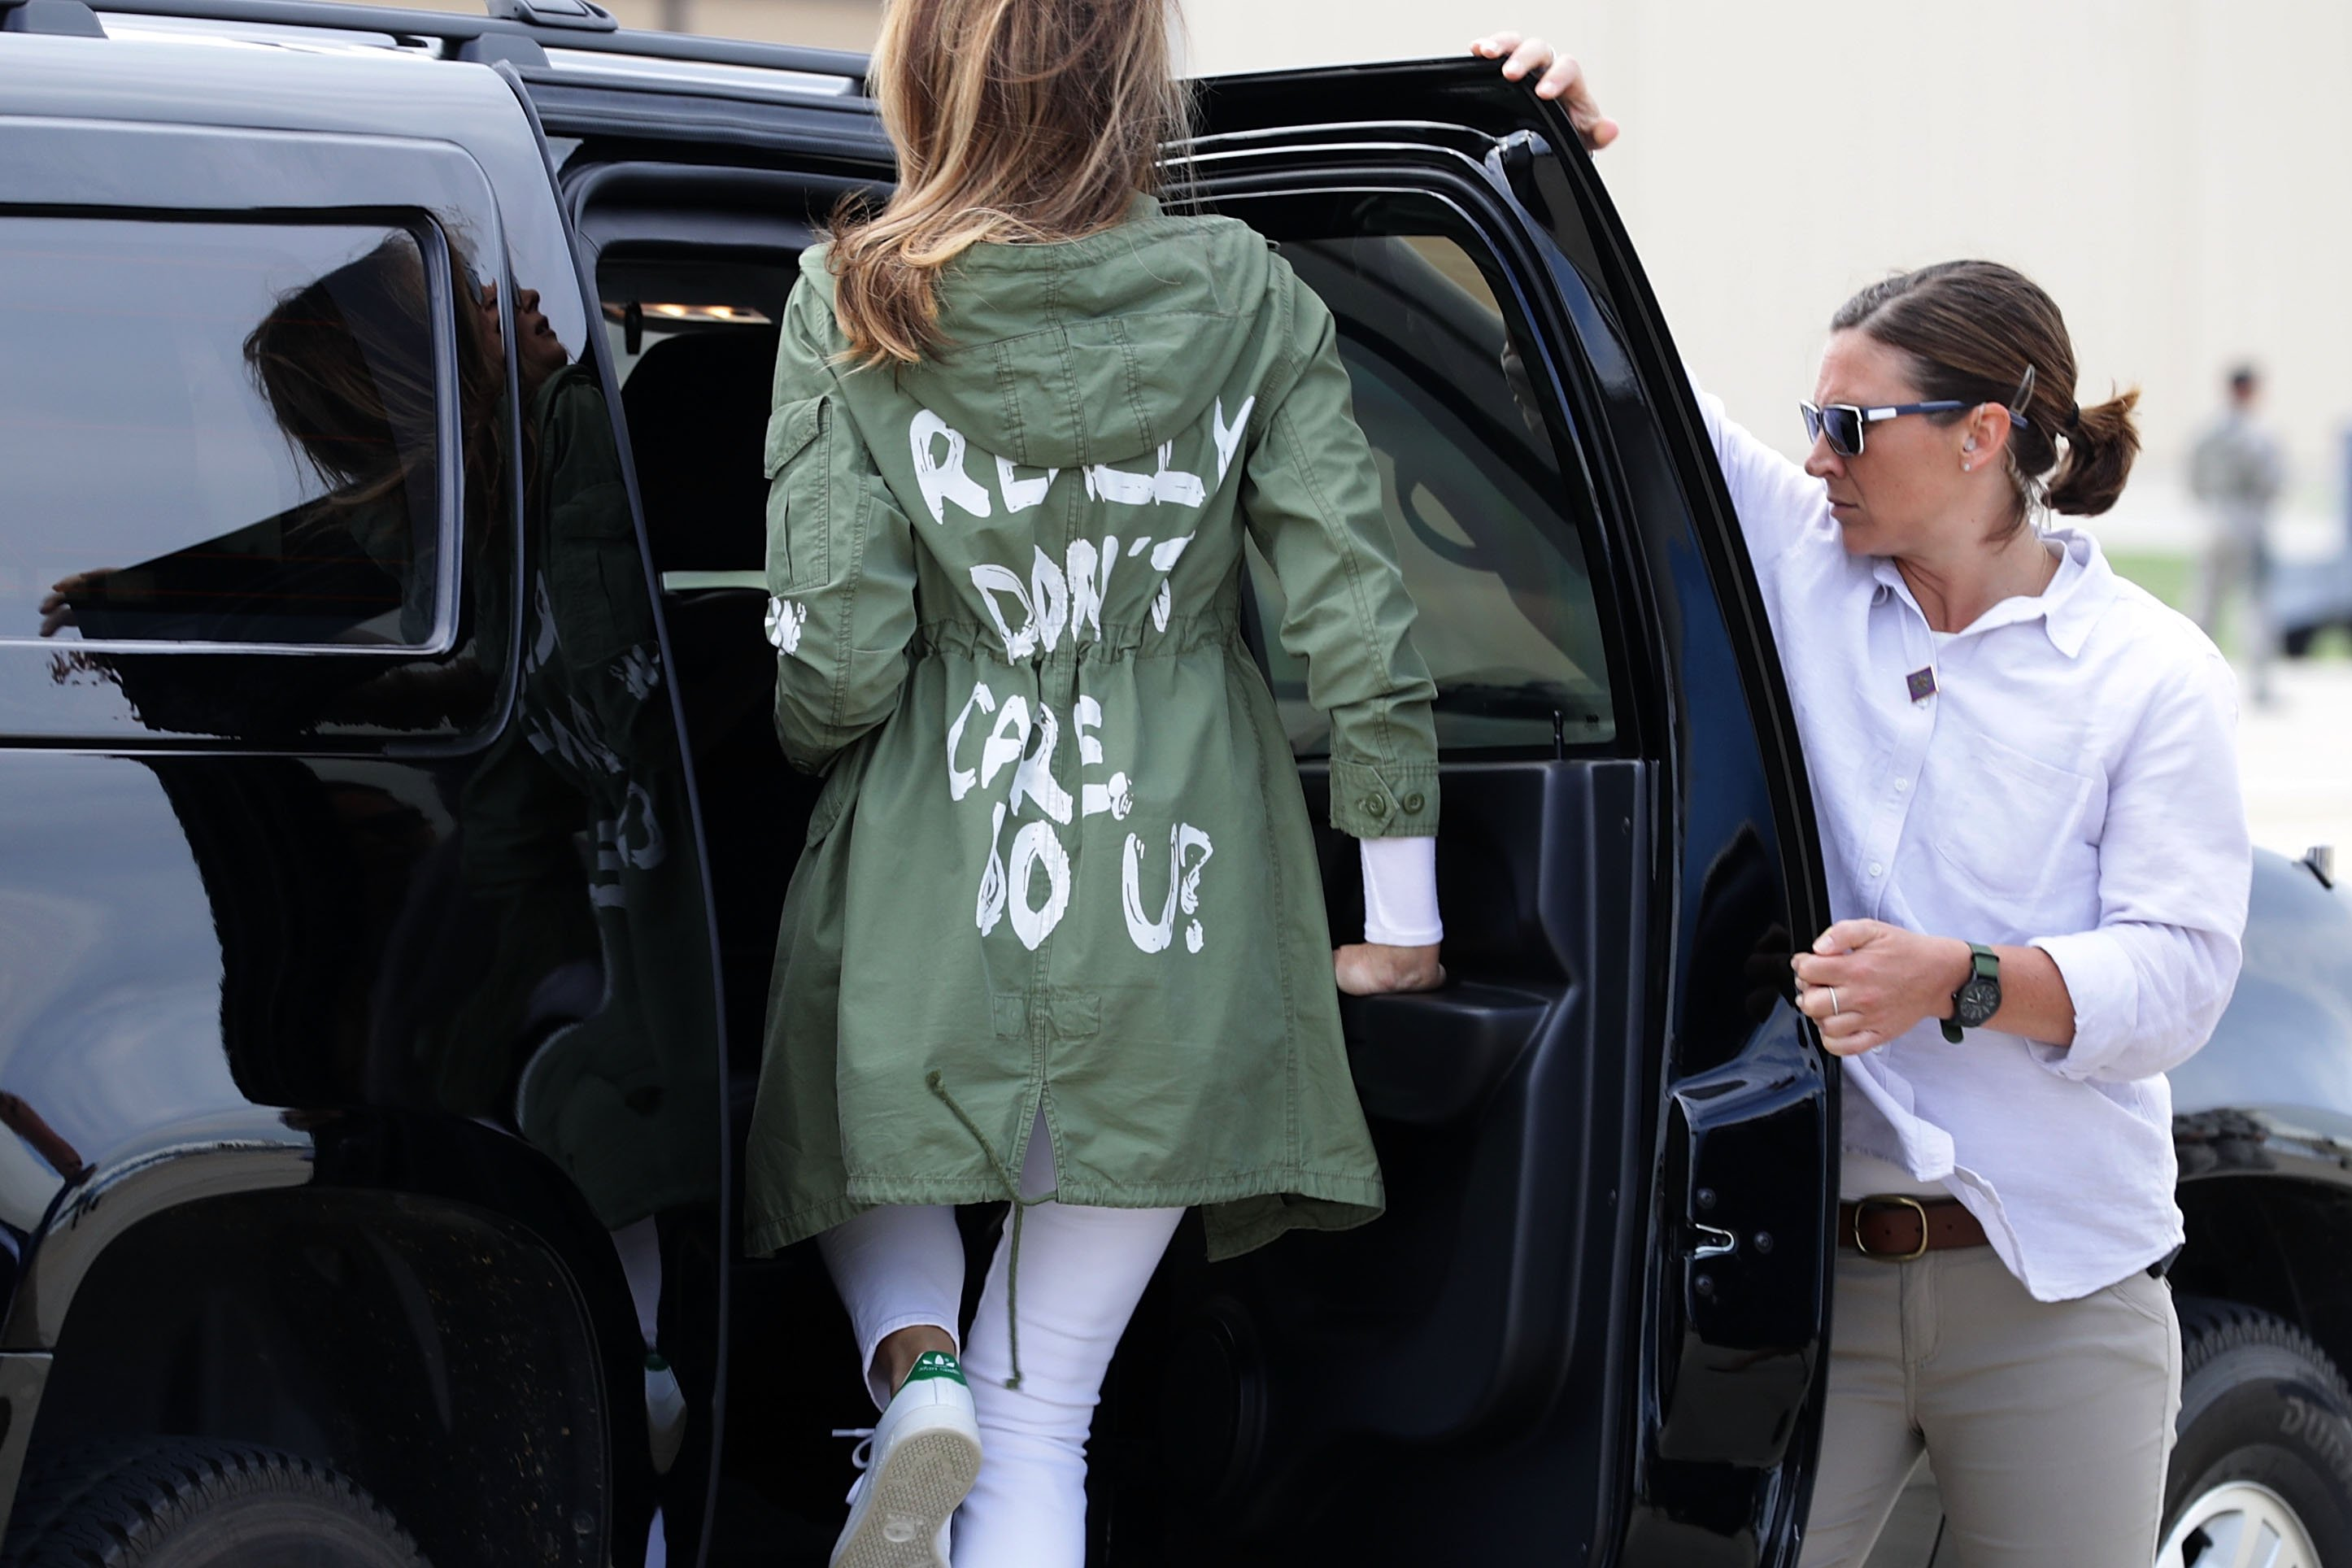 Melania Trump, Joint Base Andrews, Maryland, 21. Juni 2018 | Quelle: Getty Images